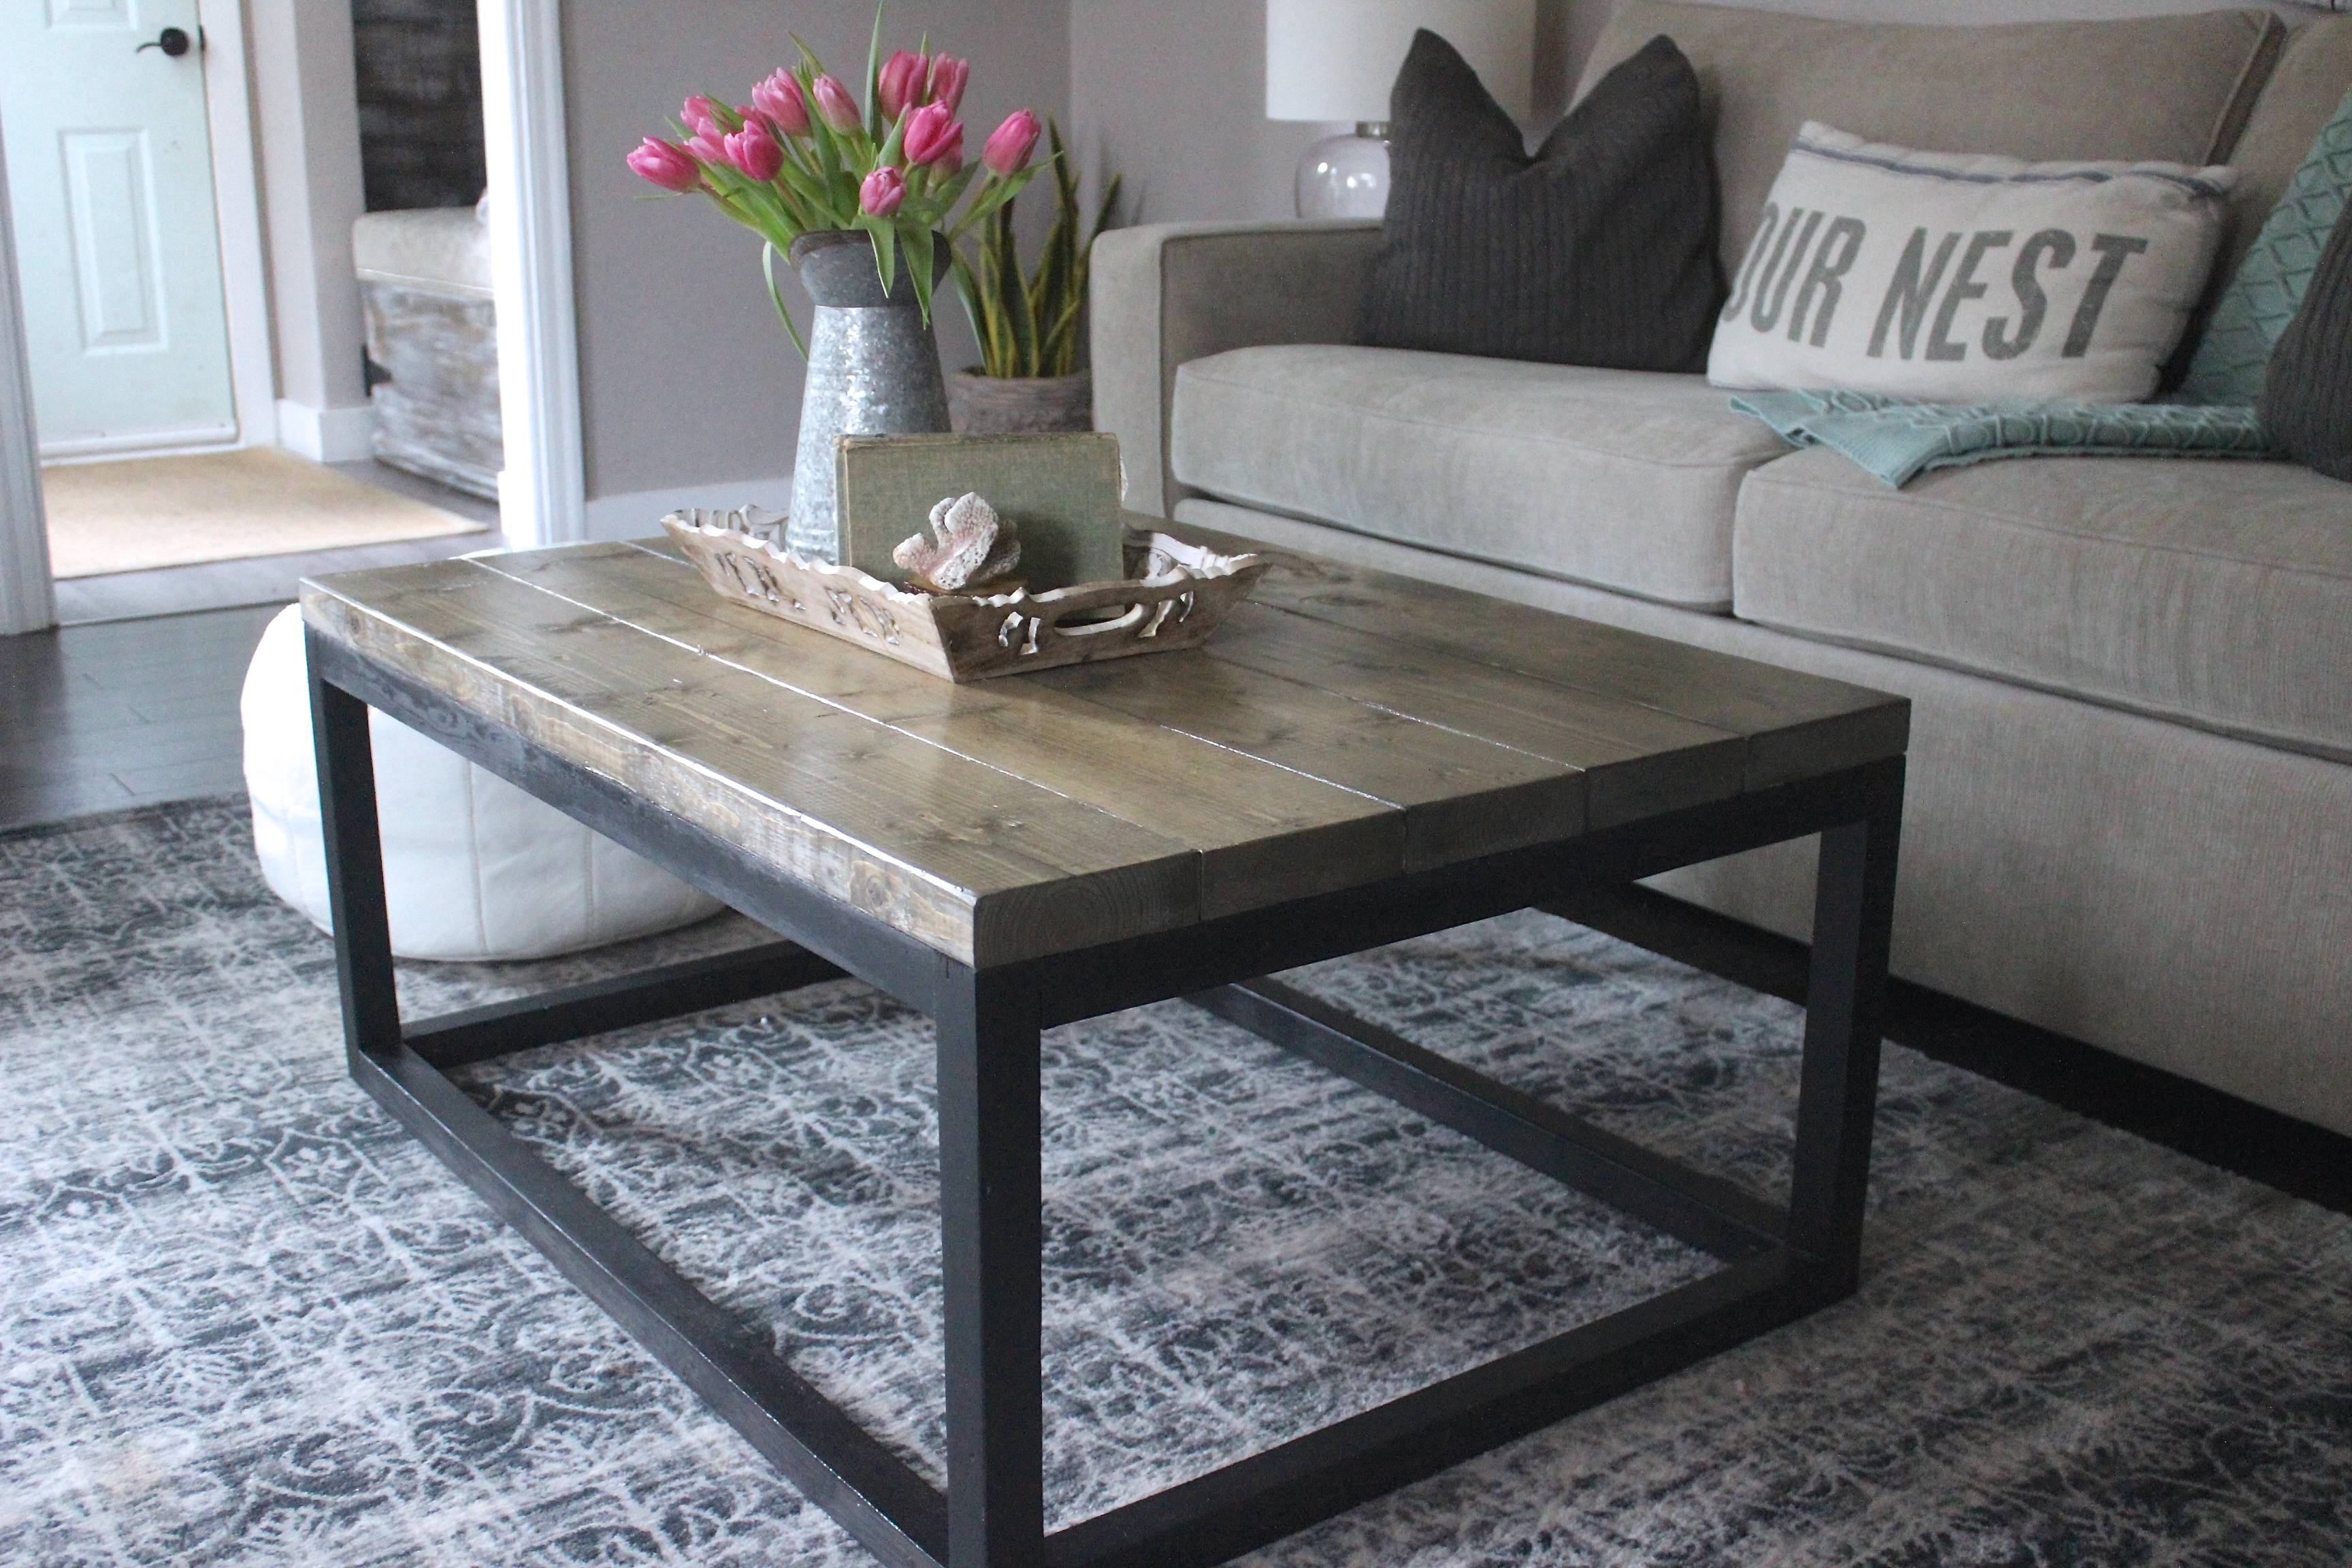 Ana White | Industrial Coffee Table - Diy Projects inside Industrial Coffee Tables (Image 1 of 15)